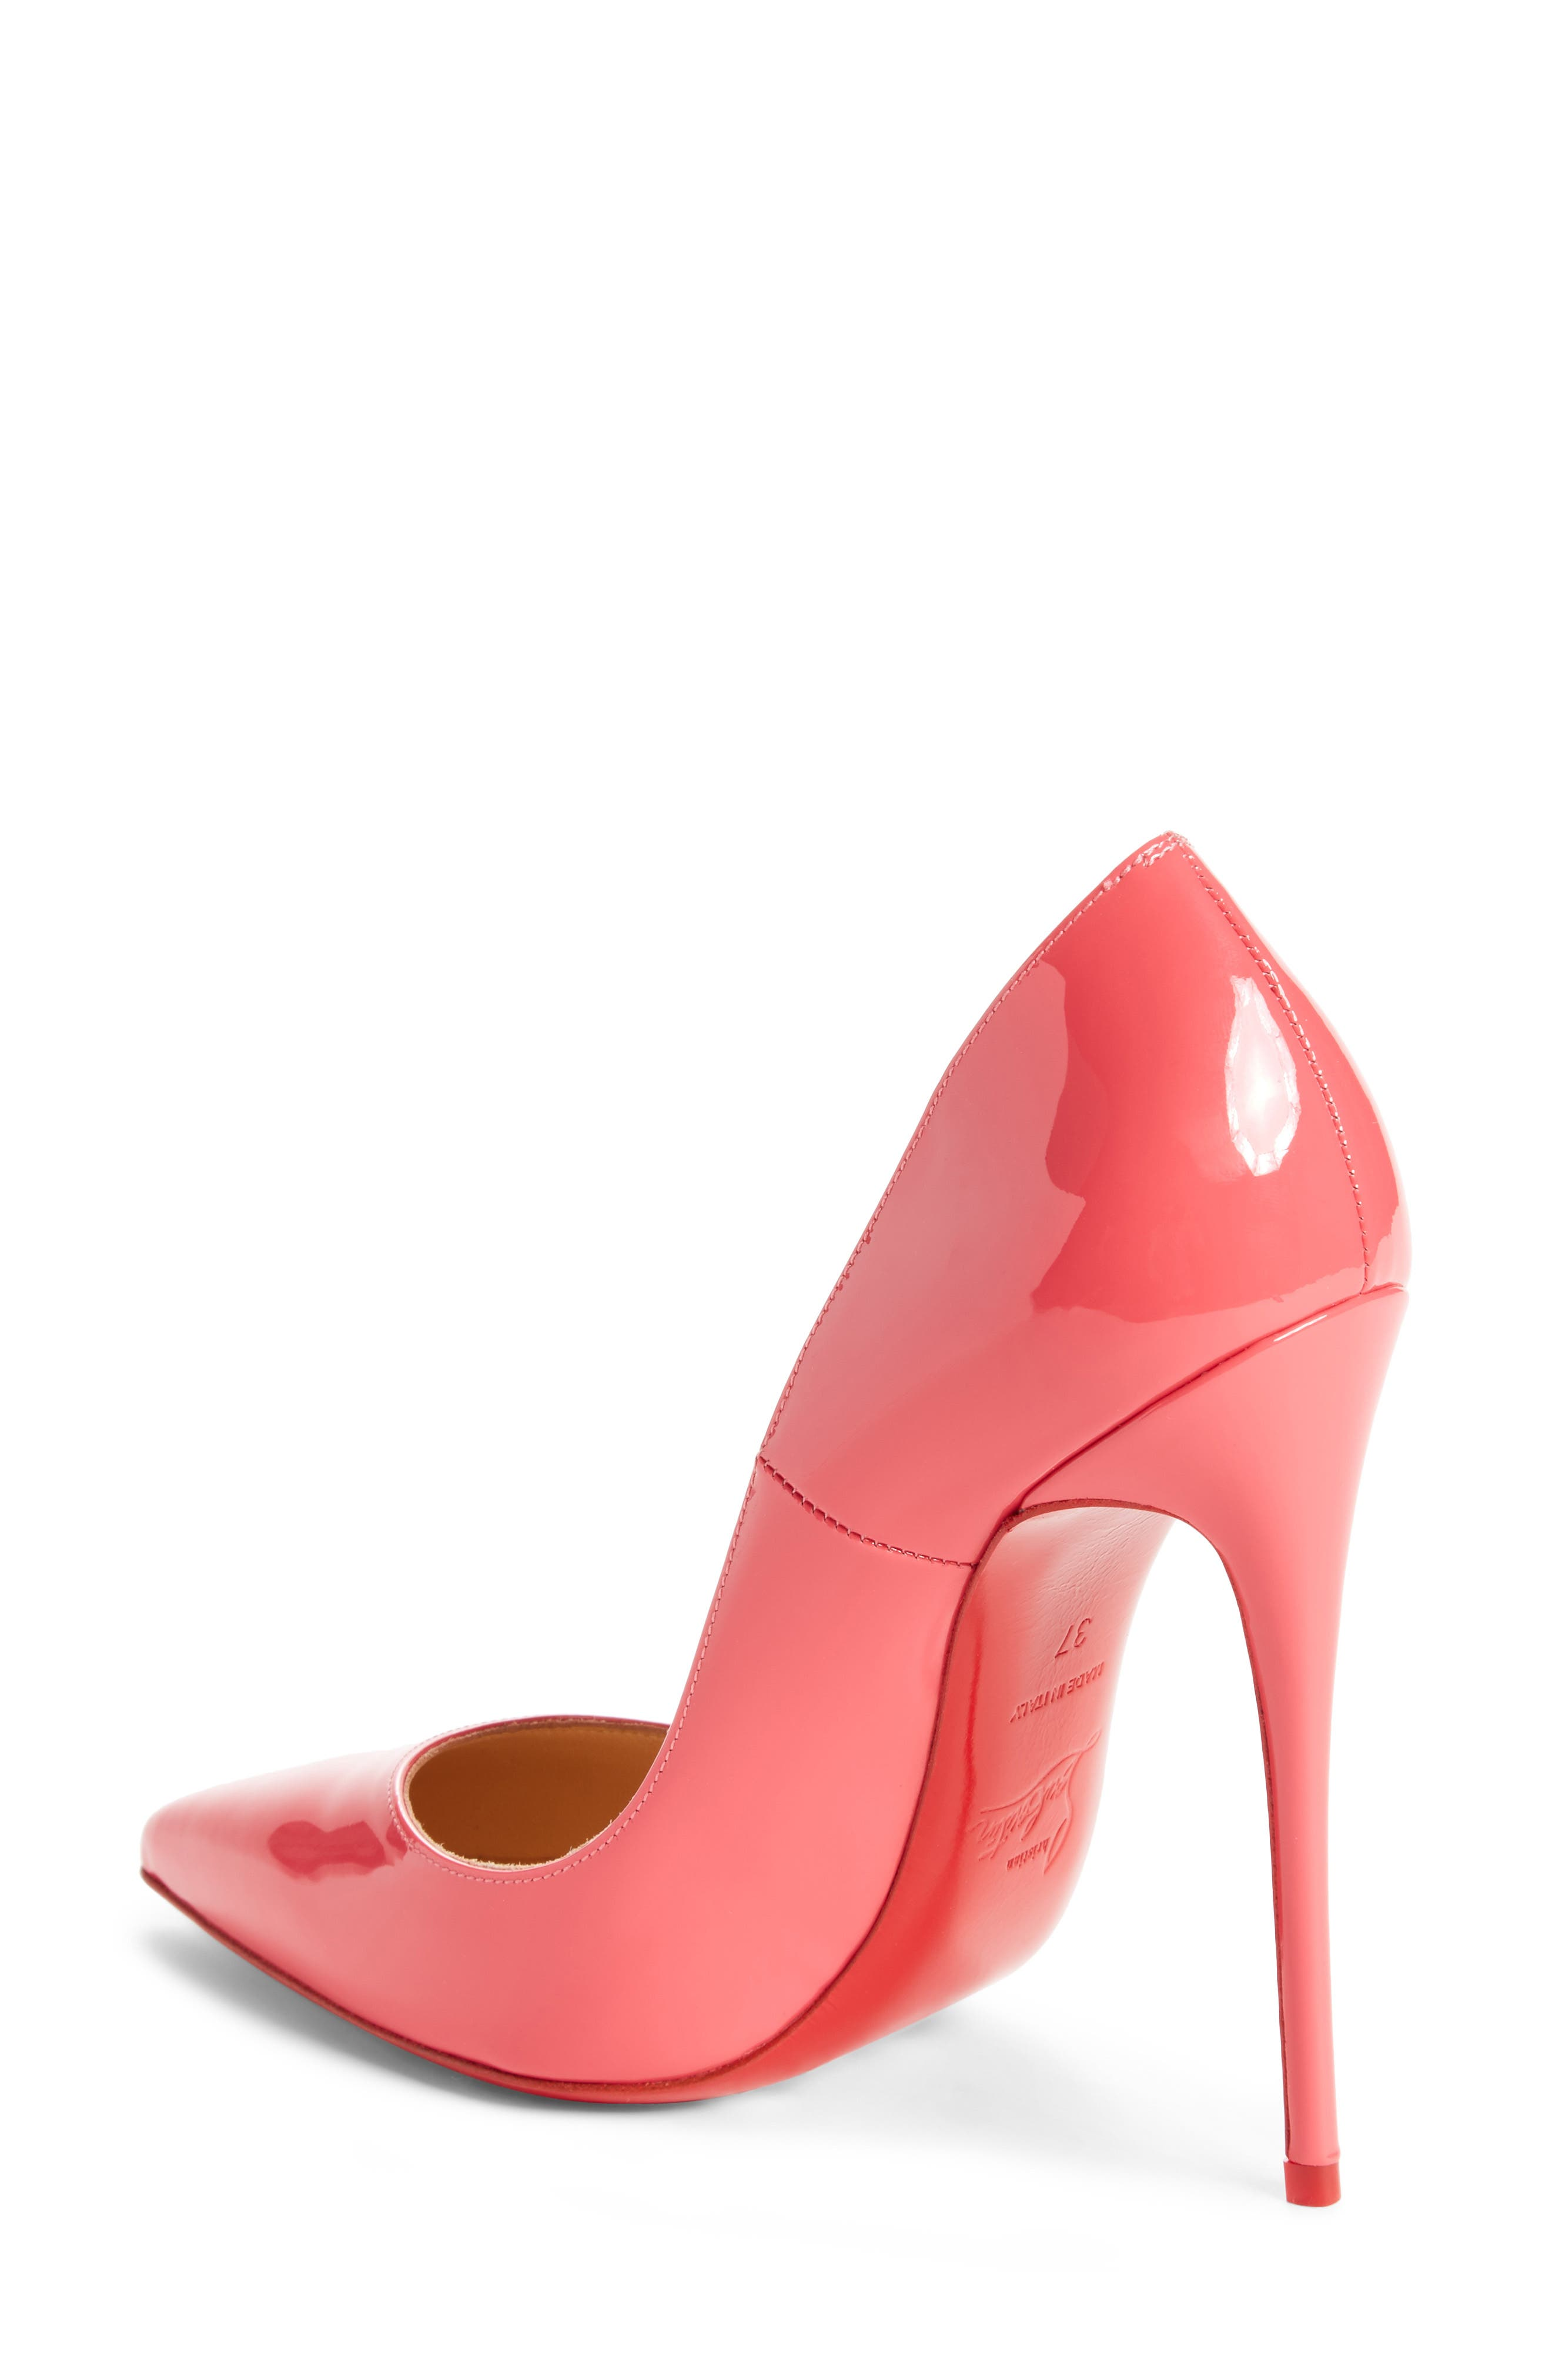 Christian Louboutin Women's Shoes | Nordstrom